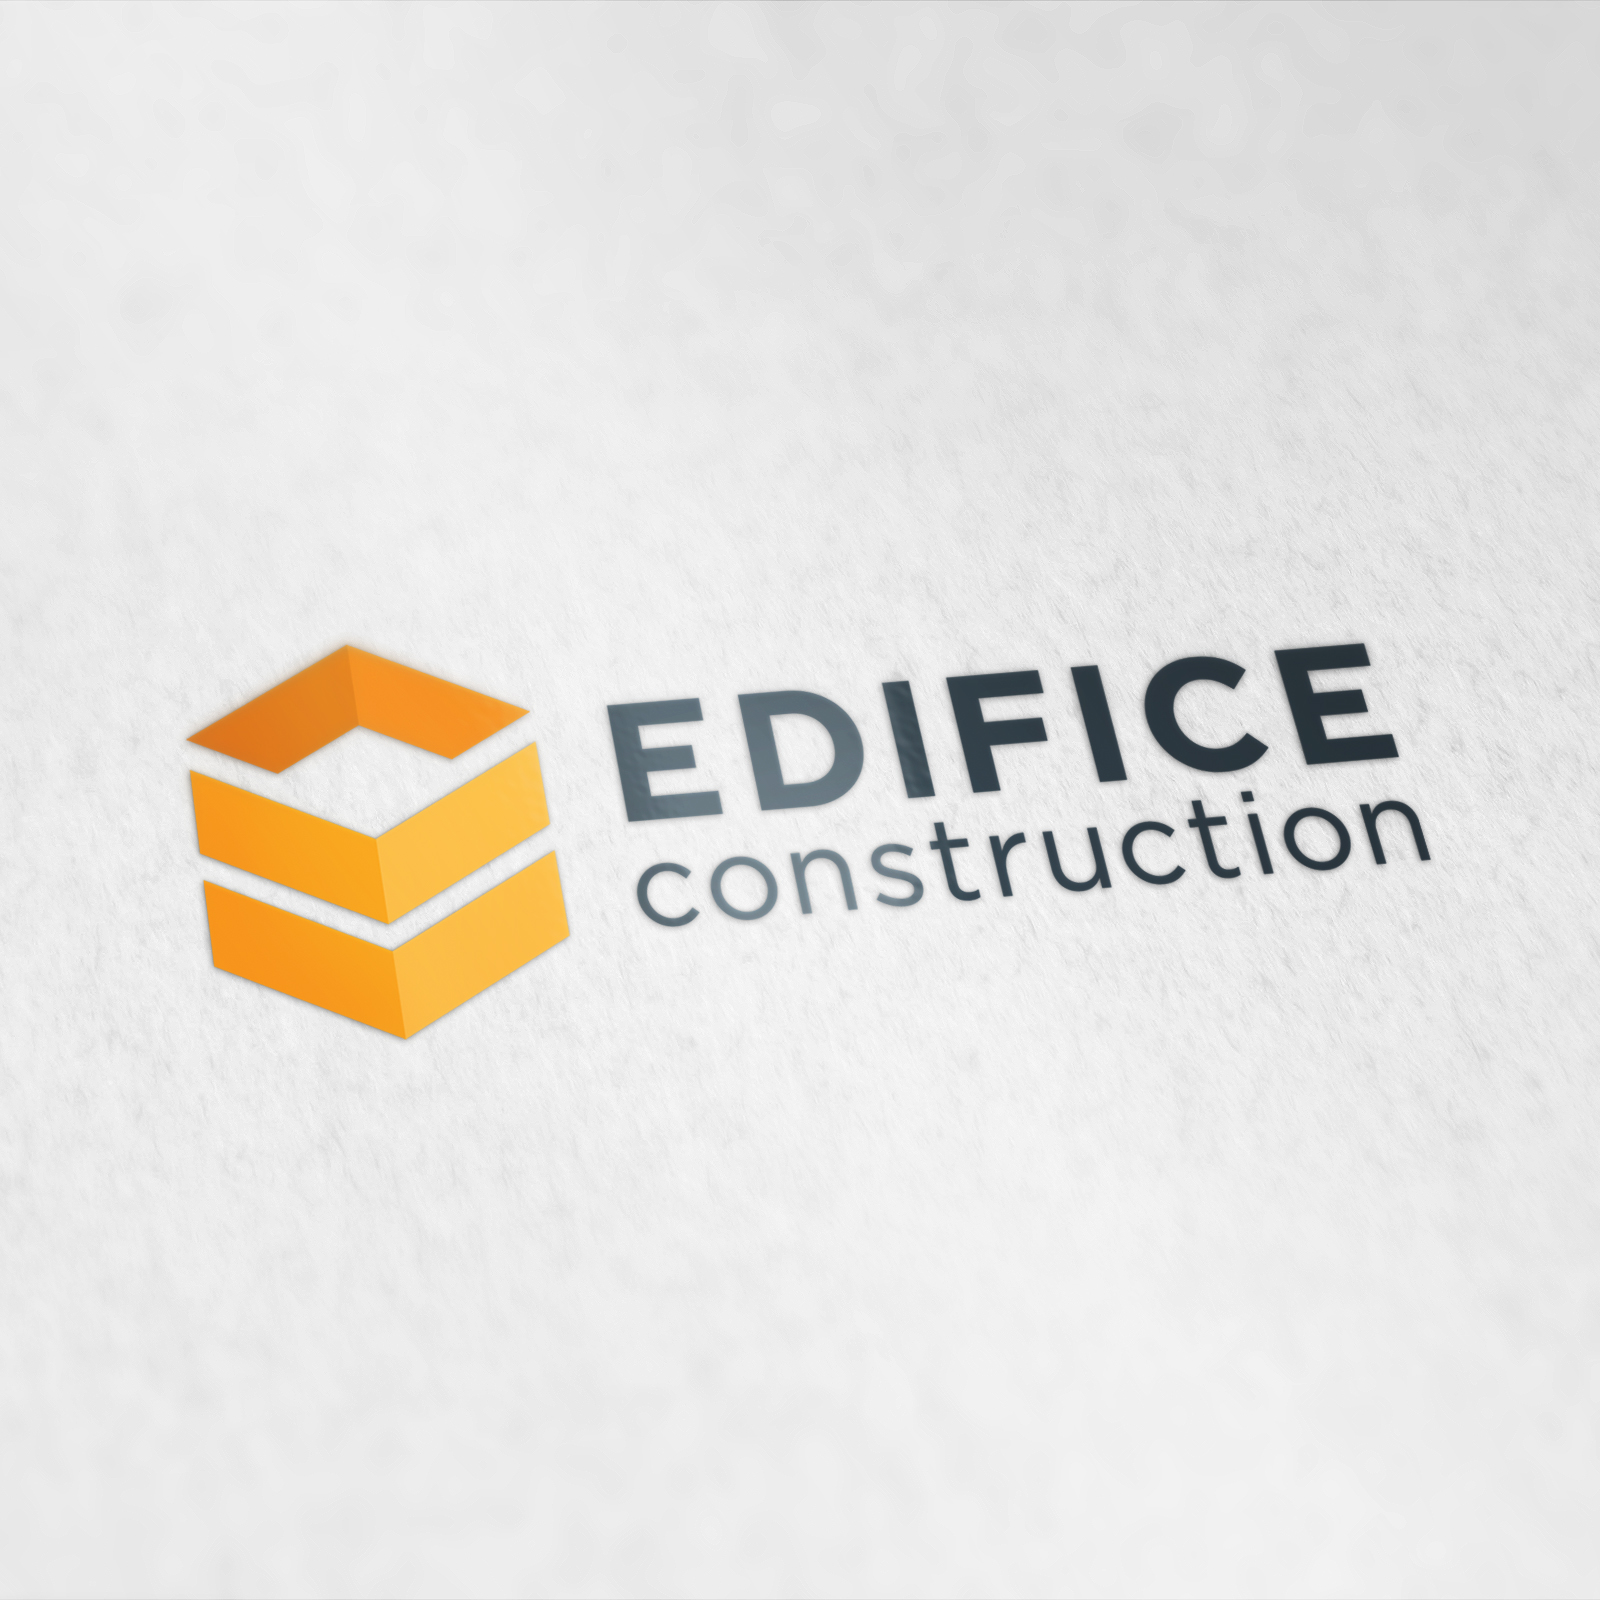 Edifice logo design